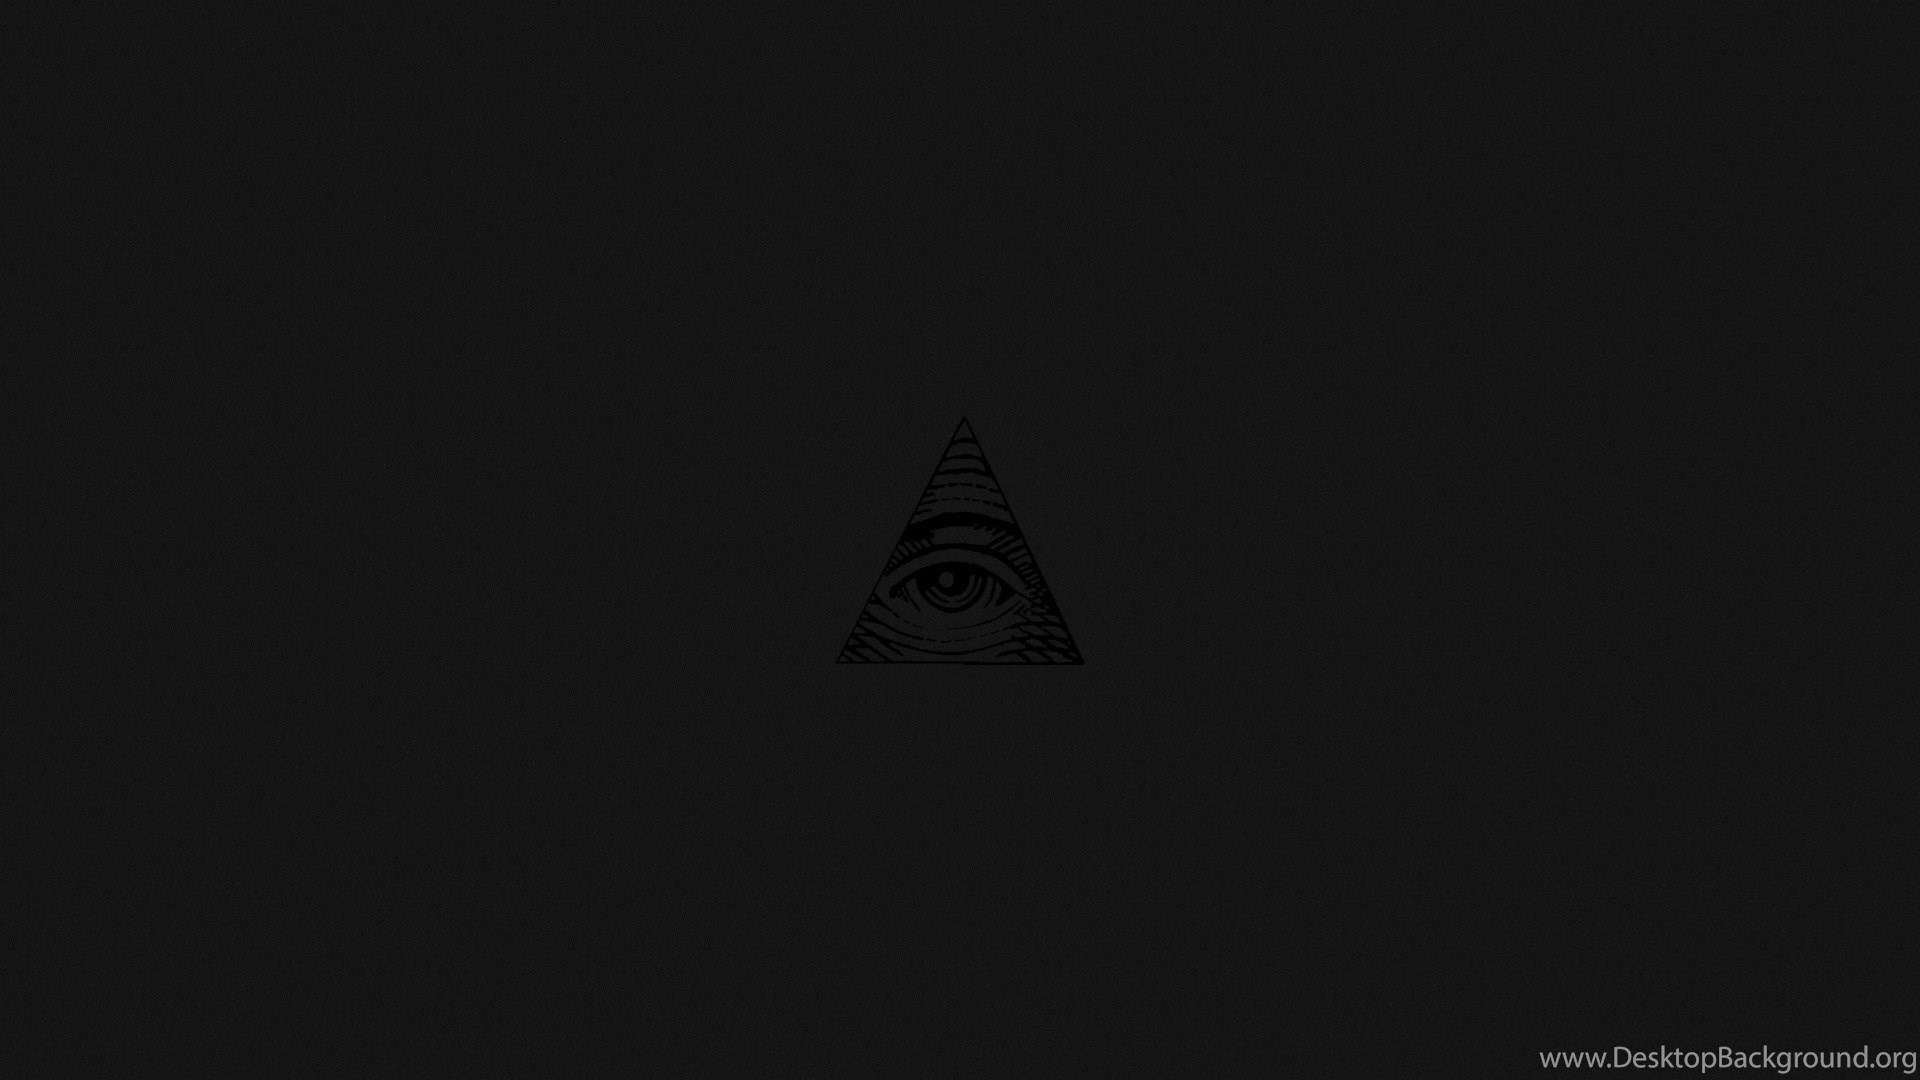 Download Eyes Illuminati Wallpapers 1920x1080 Desktop Background